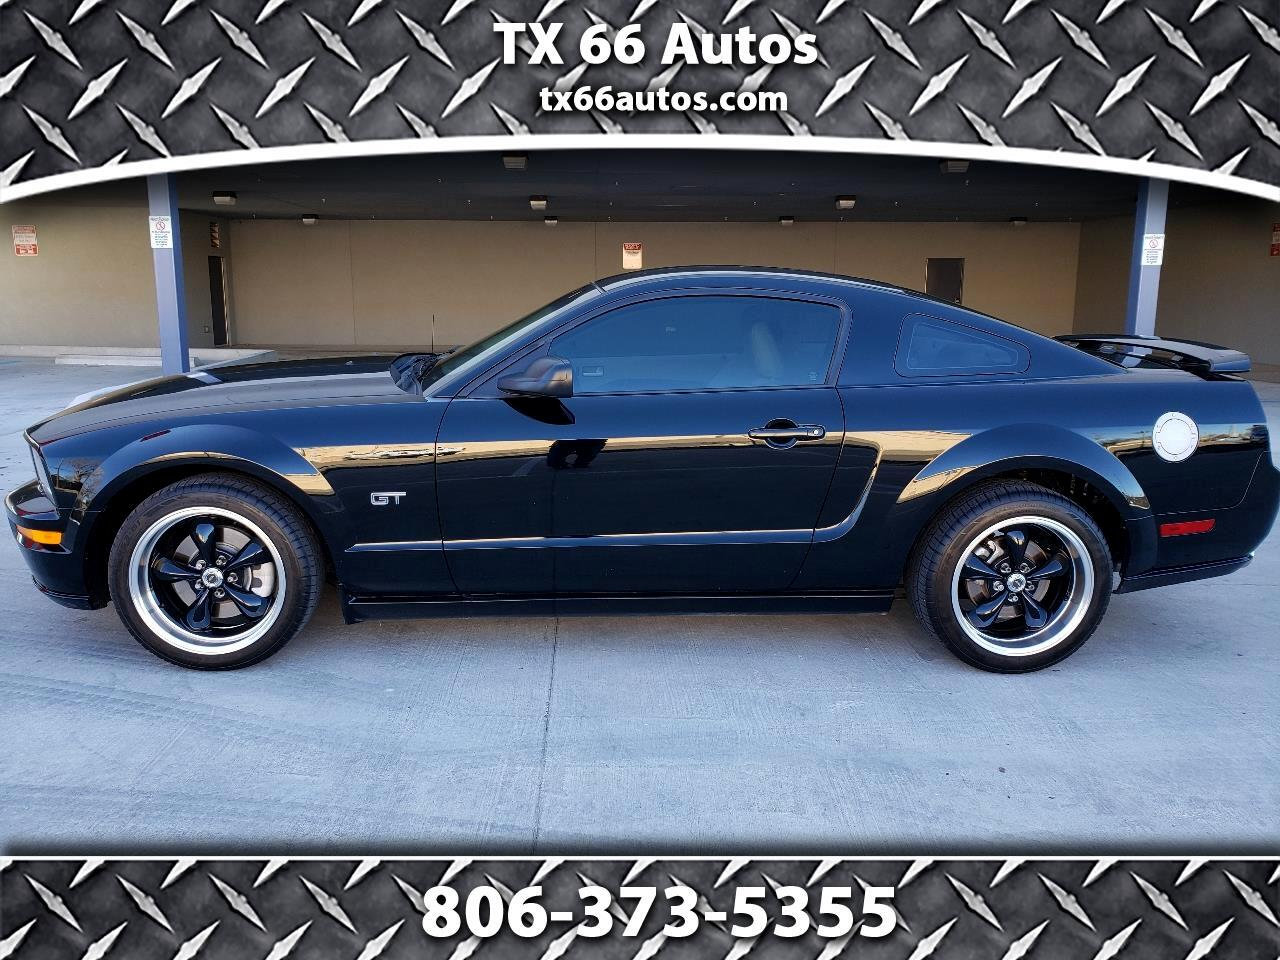 Ford Mustang 2dr Cpe GT Premium 2008